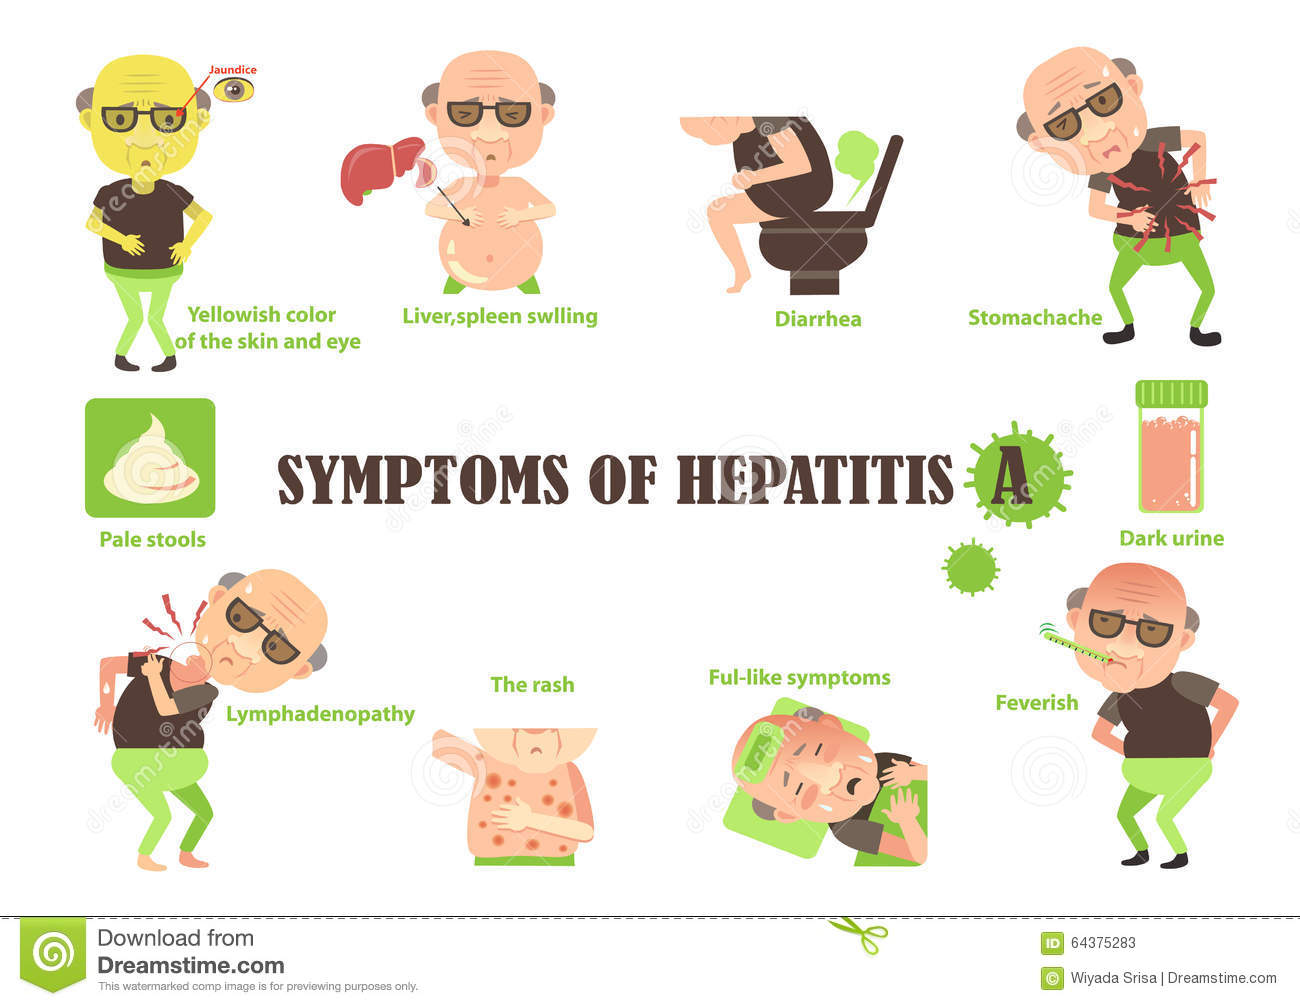 WHO  Hepatitis A